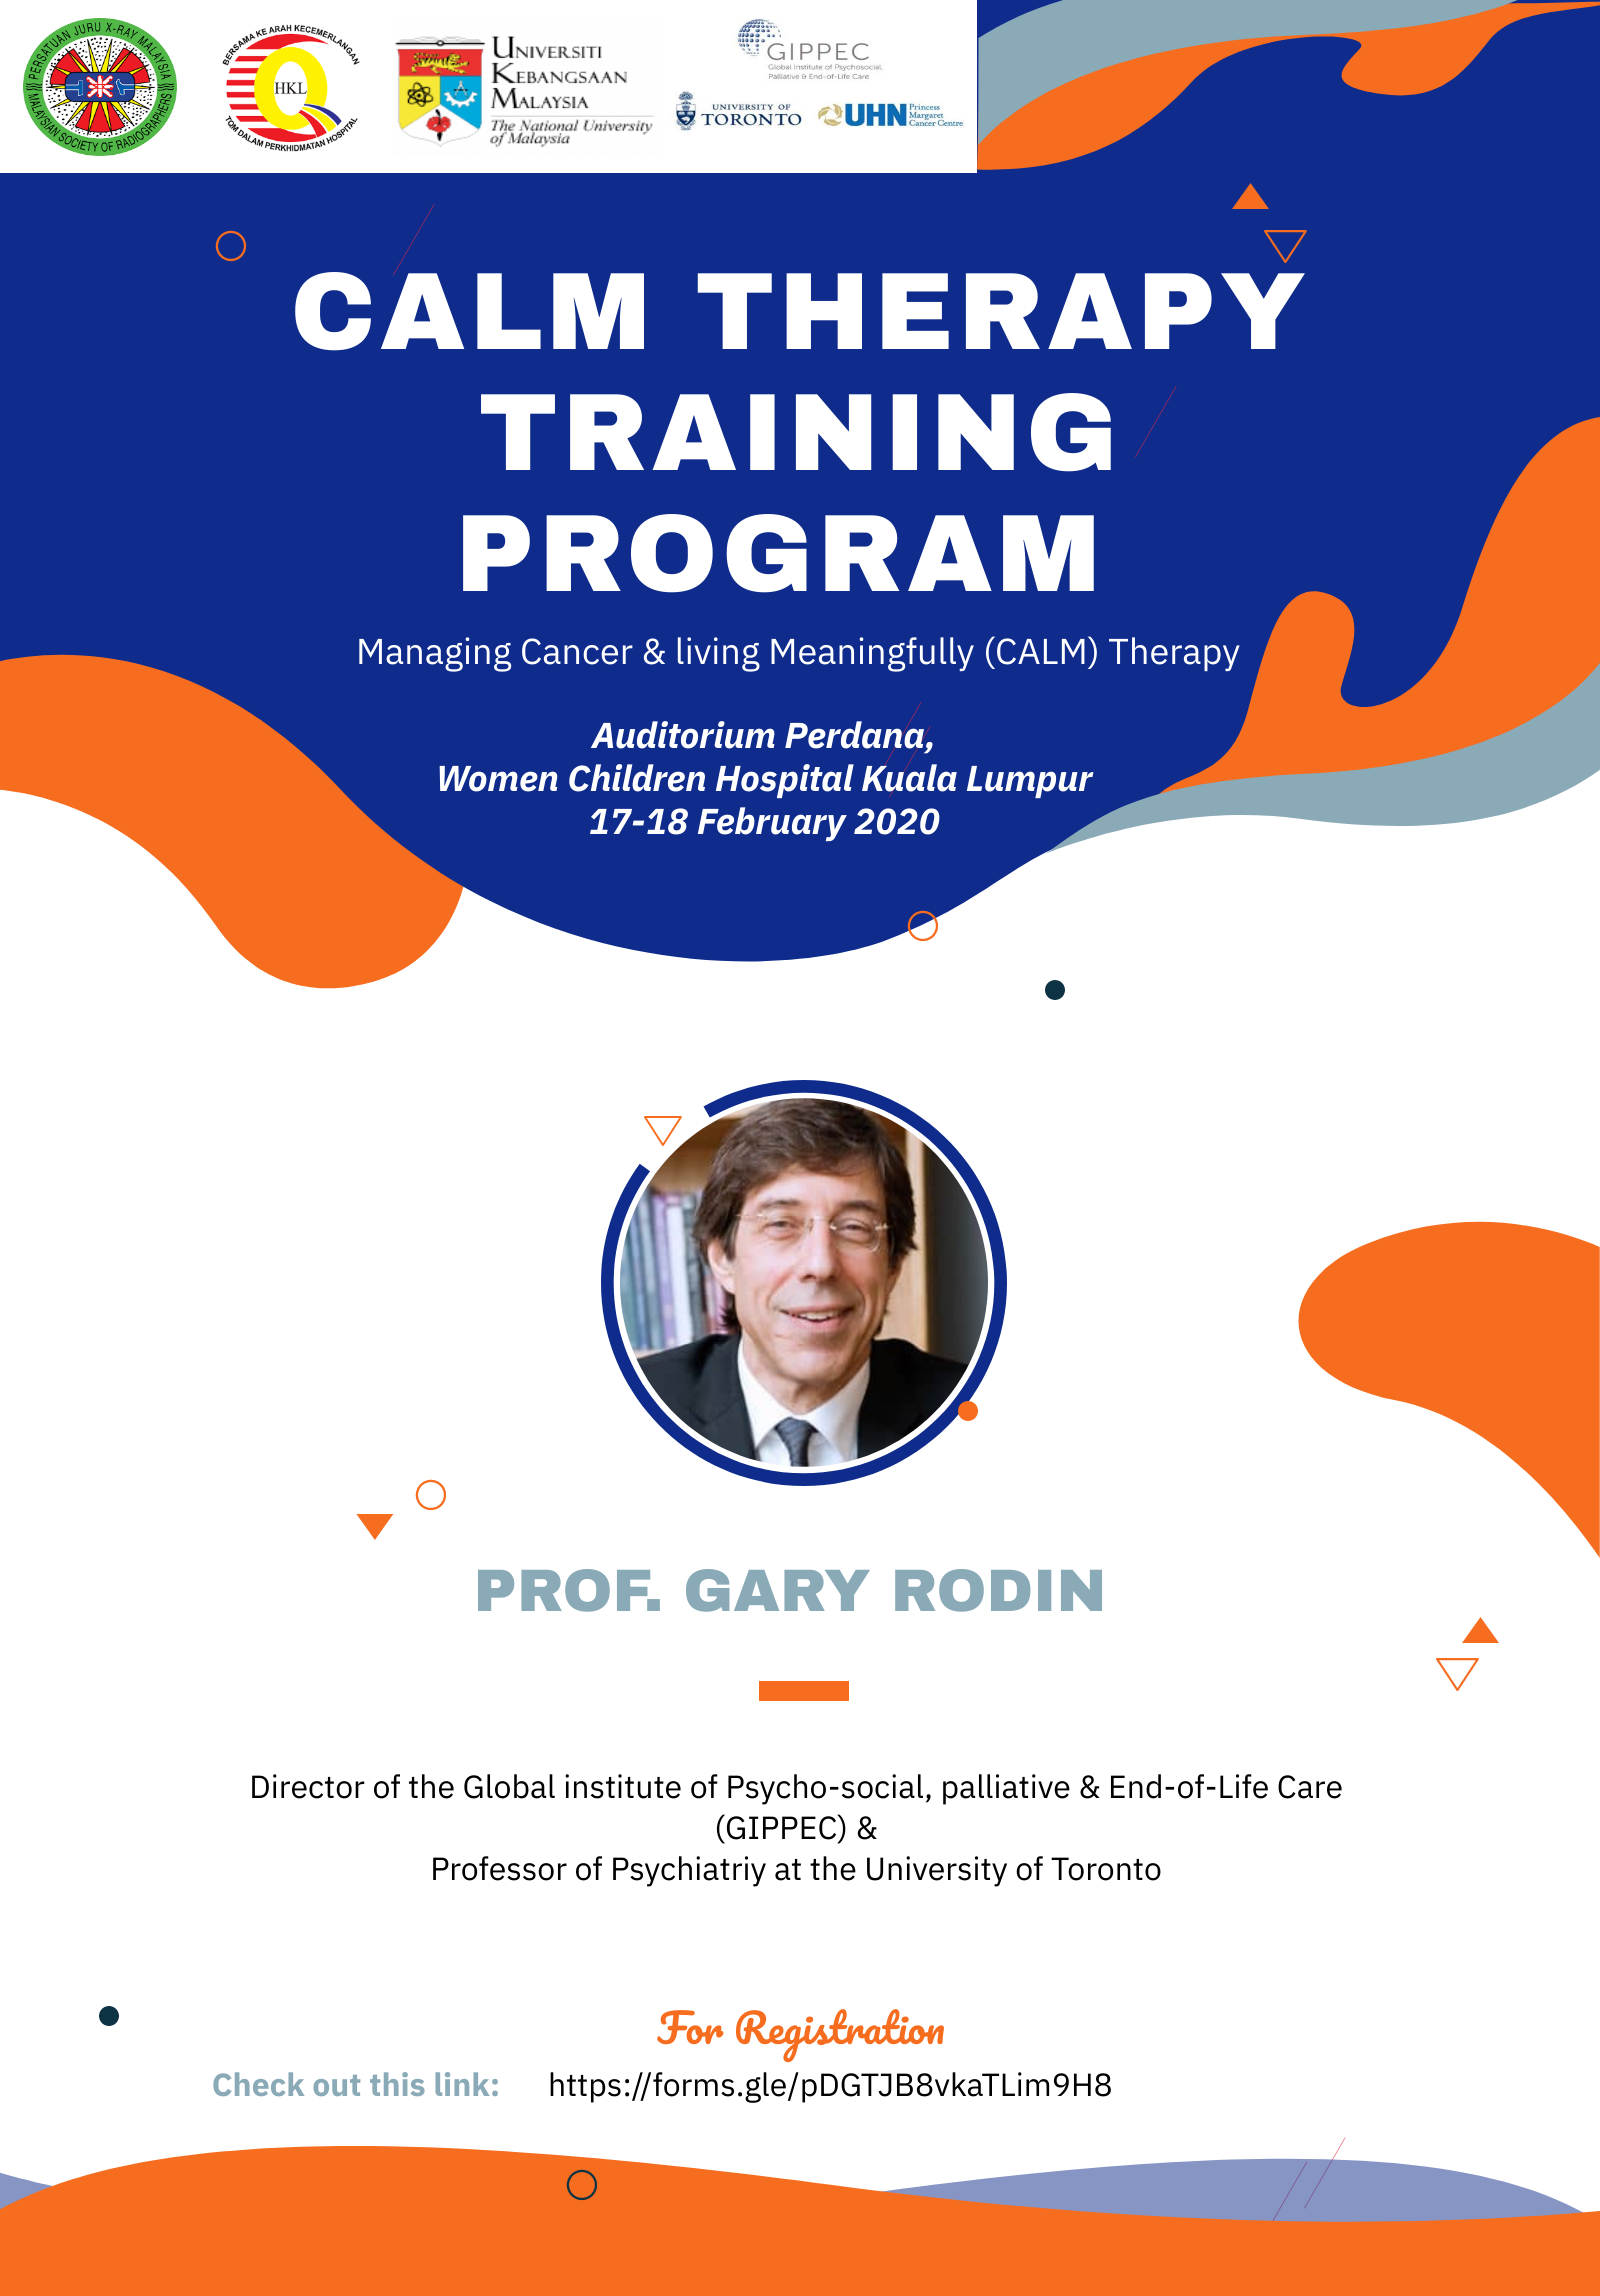 CALM THERAPY TRAINING PROGRAM